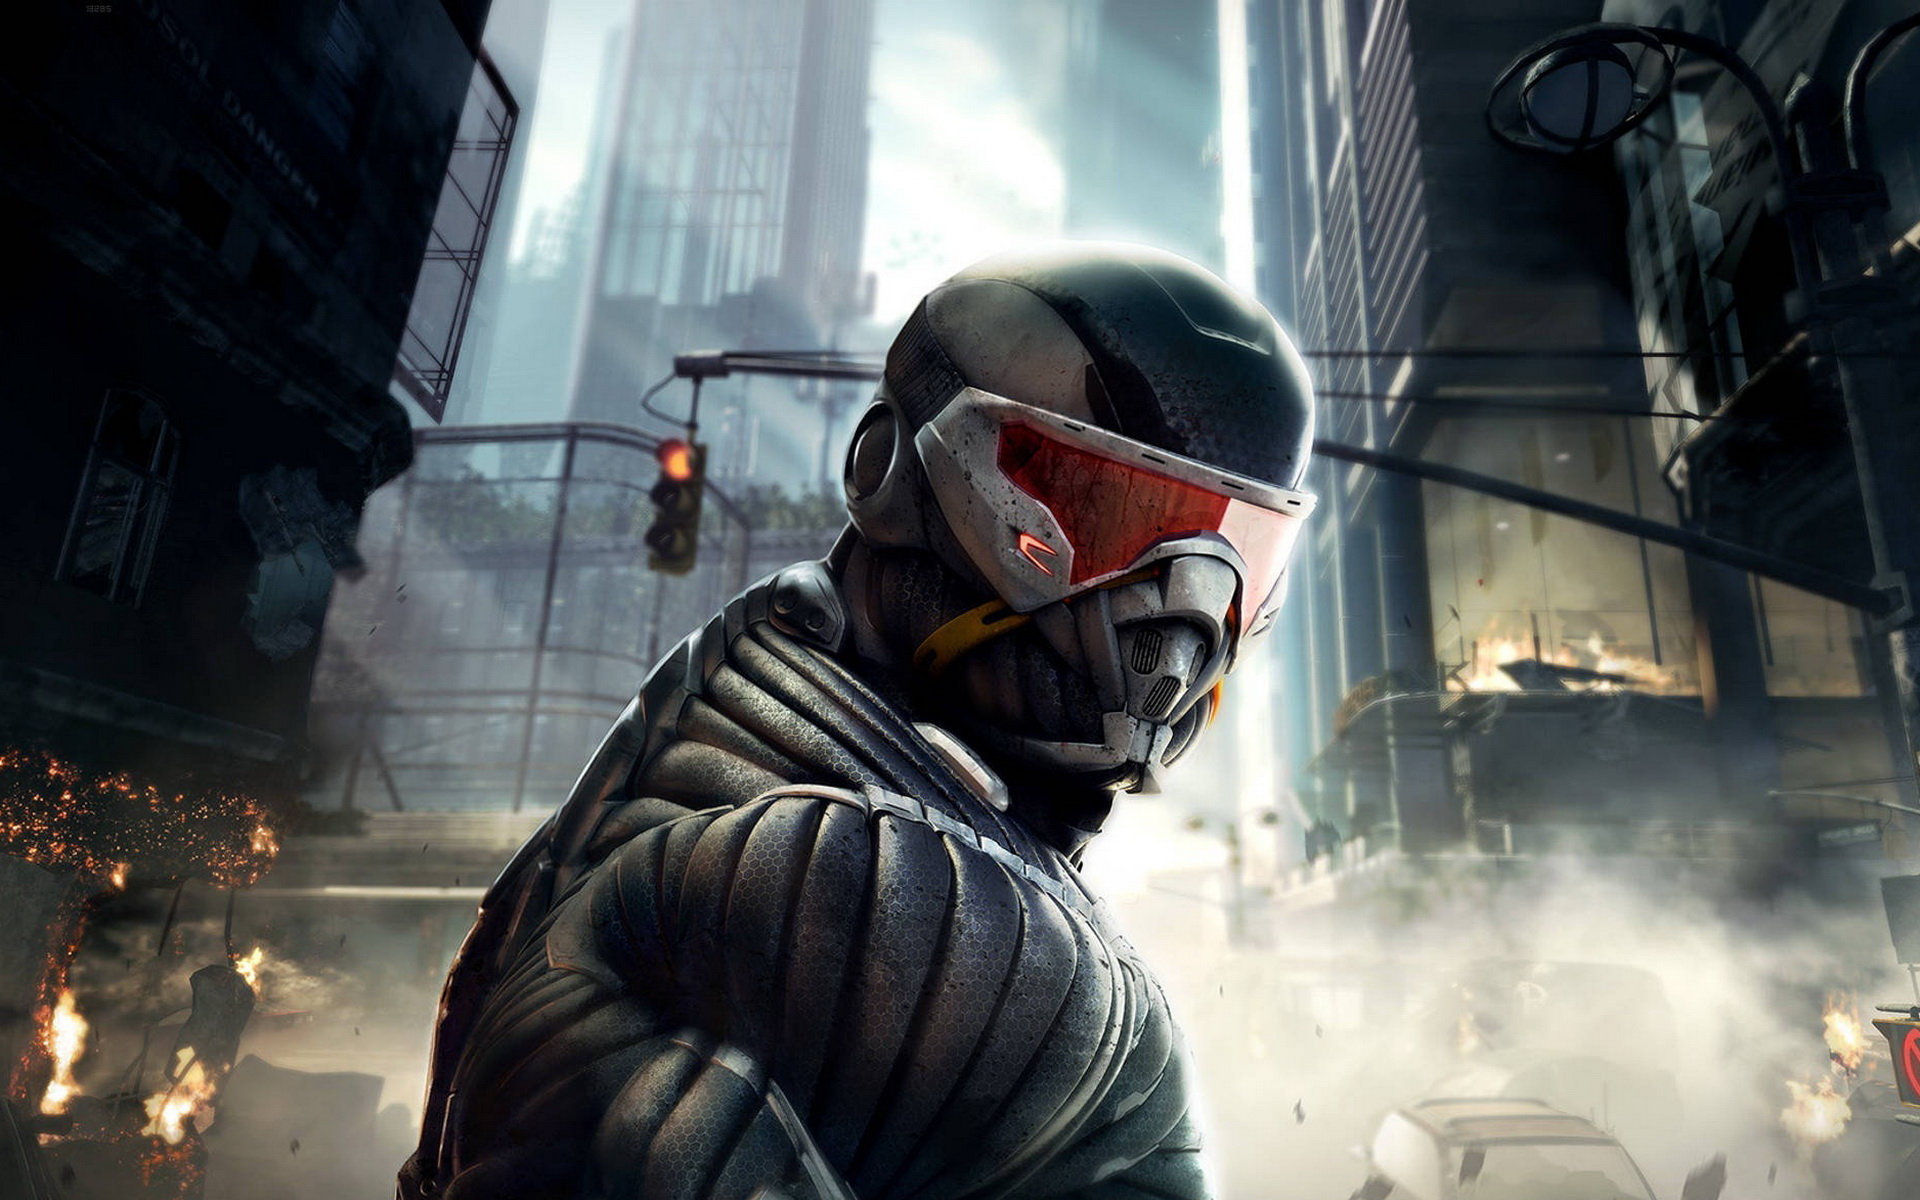 Amazing Crysis 2 Wallpapers HD Wallpapers 1920x1200